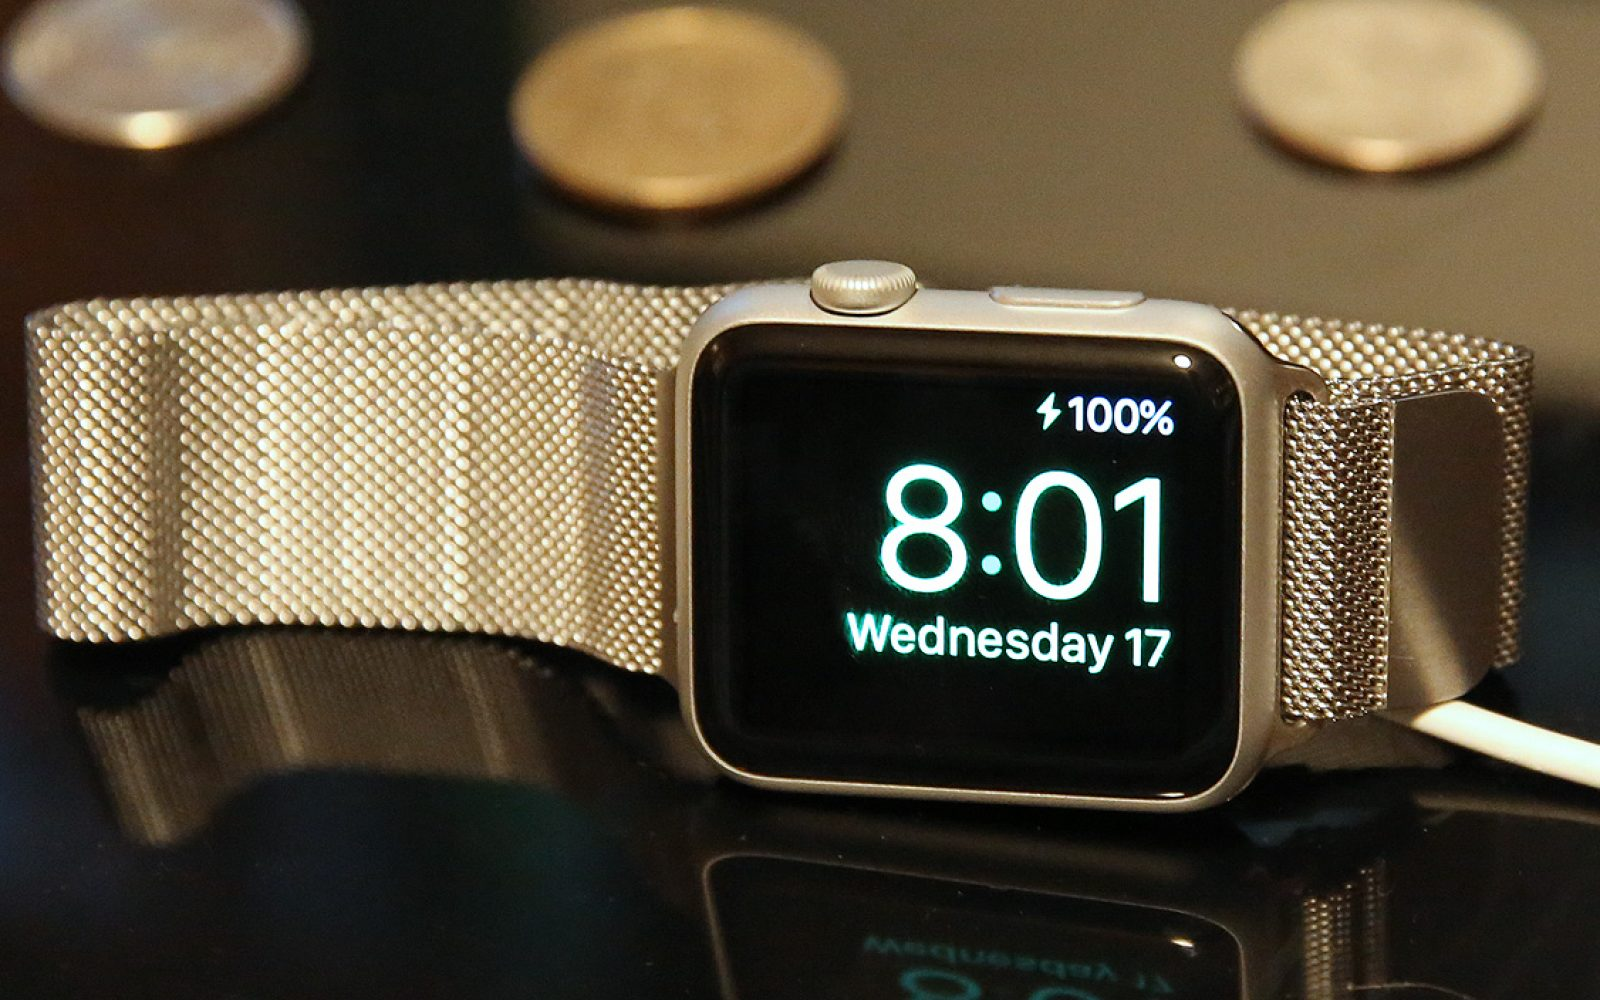 Opinion: Three things Apple Watch's Nightstand mode should